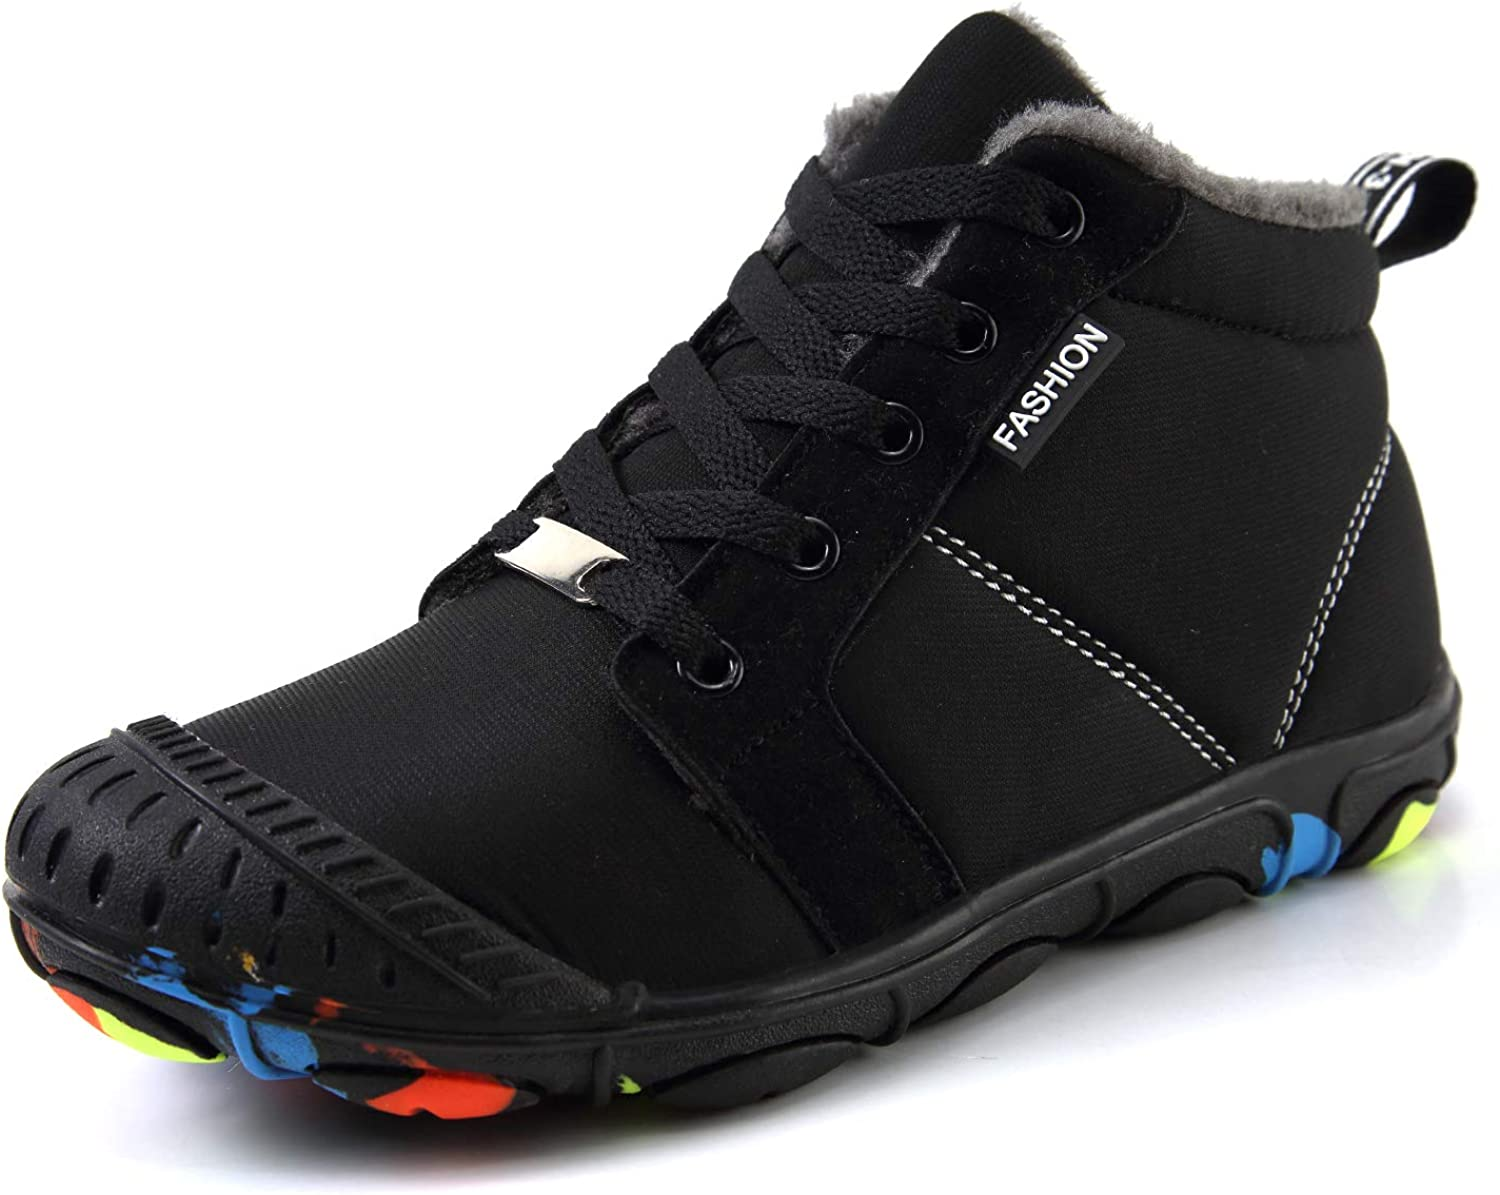 Now free shipping SCIEN Kids Snow Ranking TOP3 Boots Boys Shoes Outdoor Girls Winter Warm